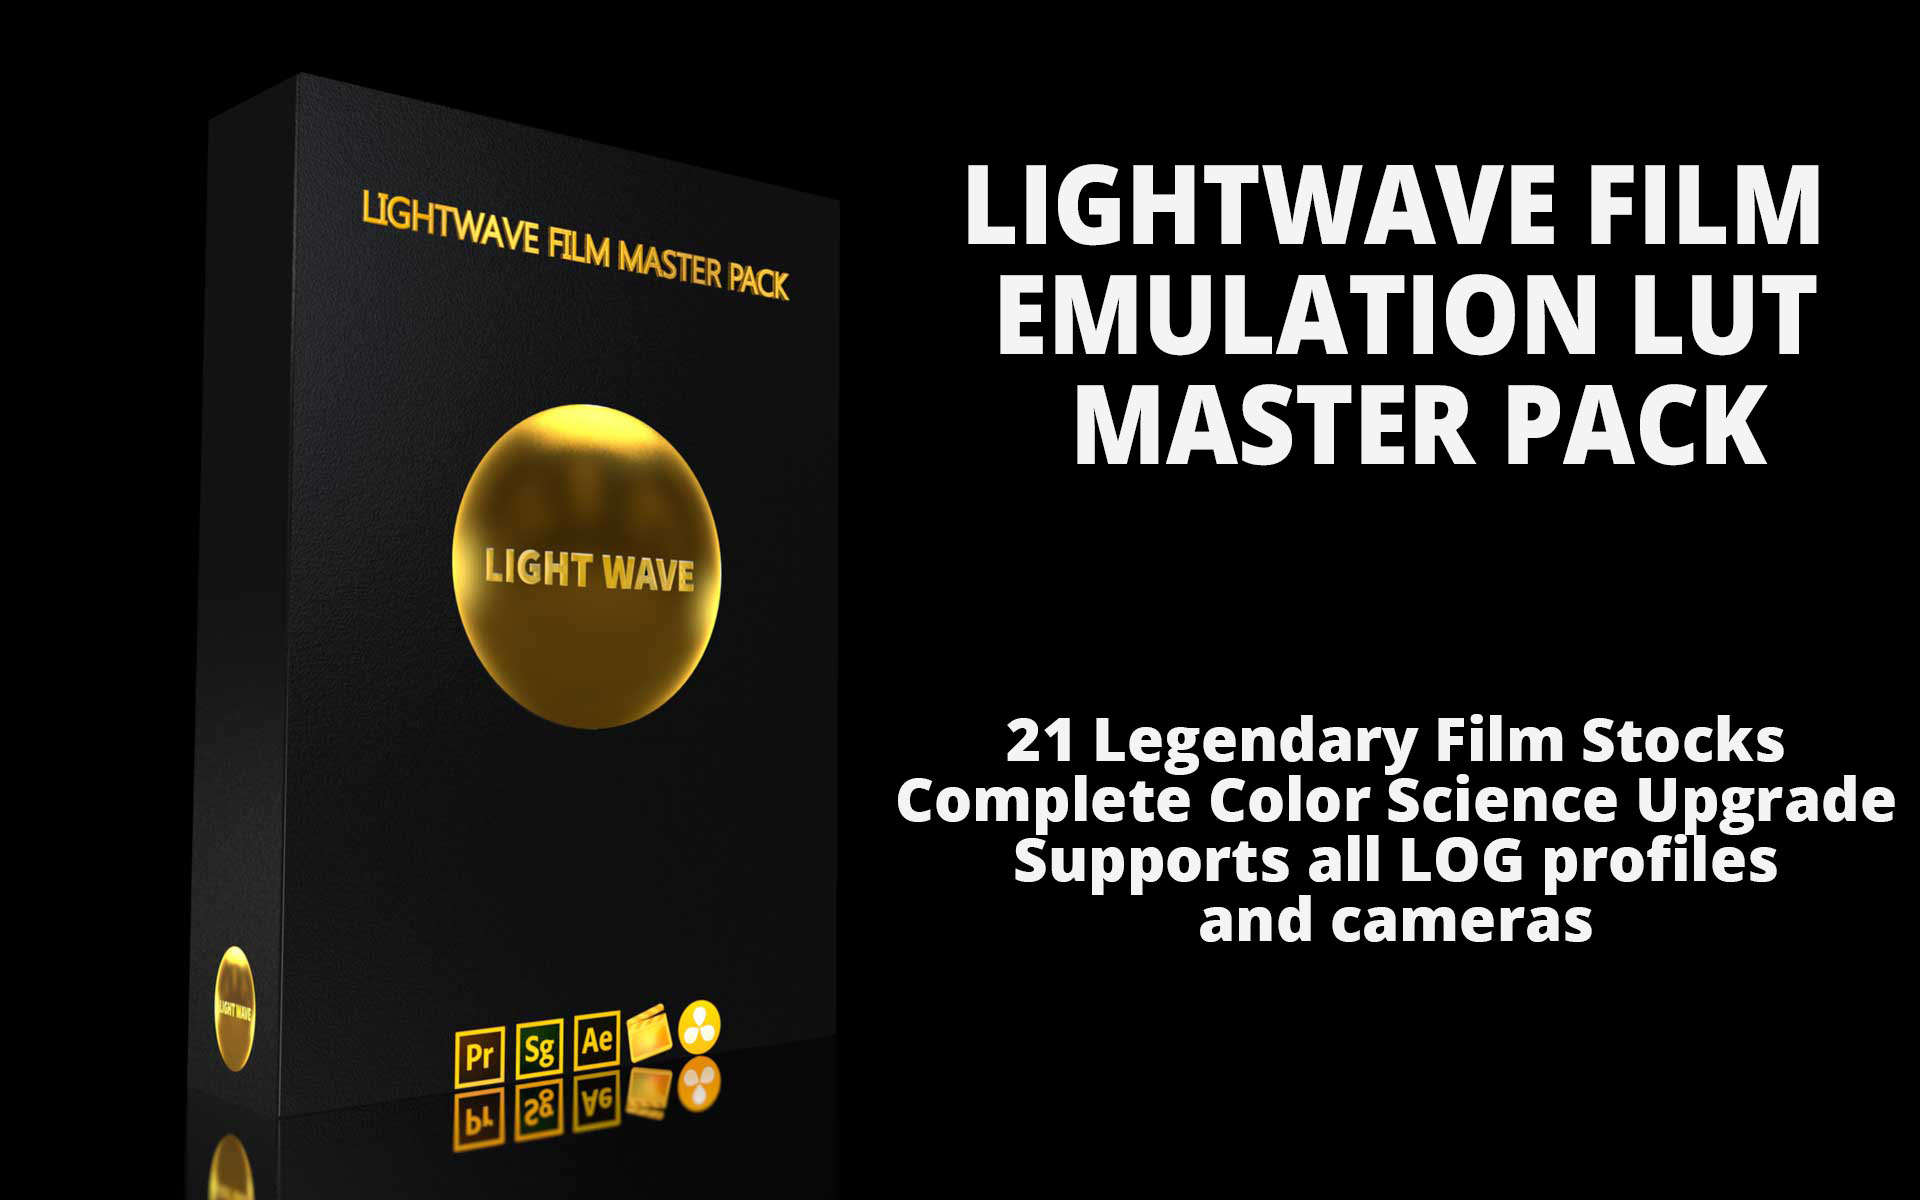 LightWave Film LUT Master Pack